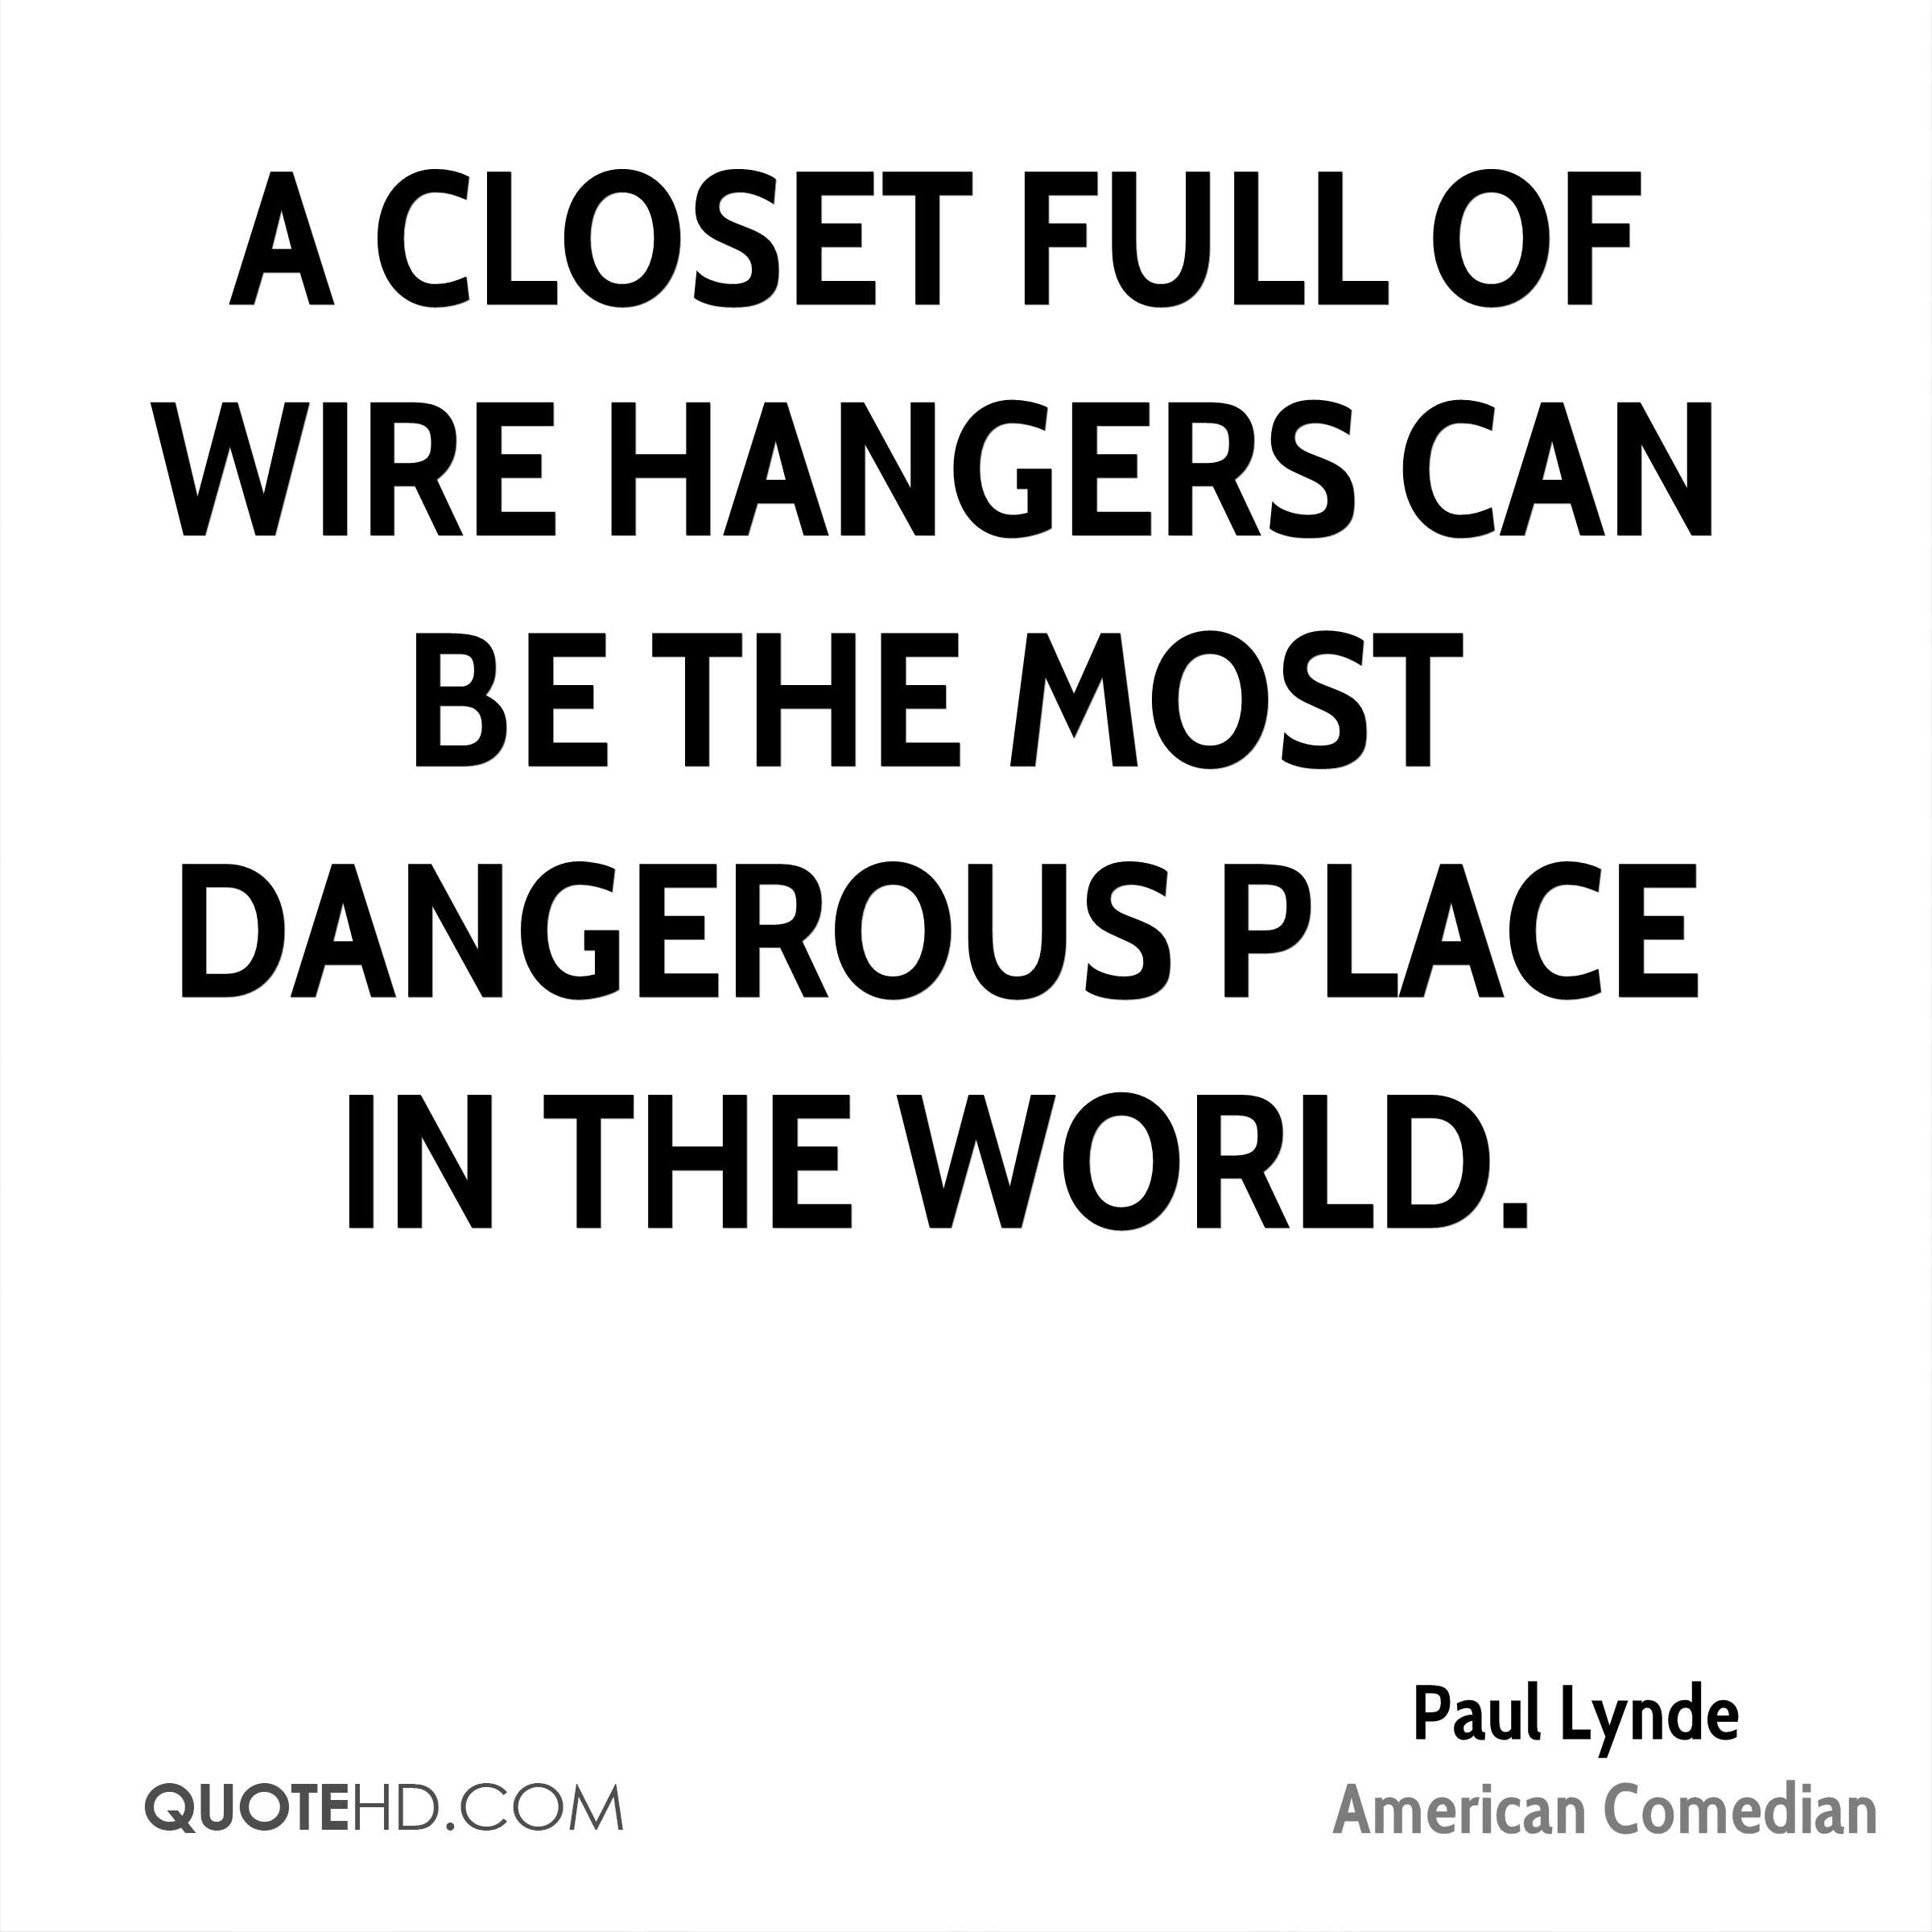 A closet full of wire hangers can be the most dangerous place in the world.